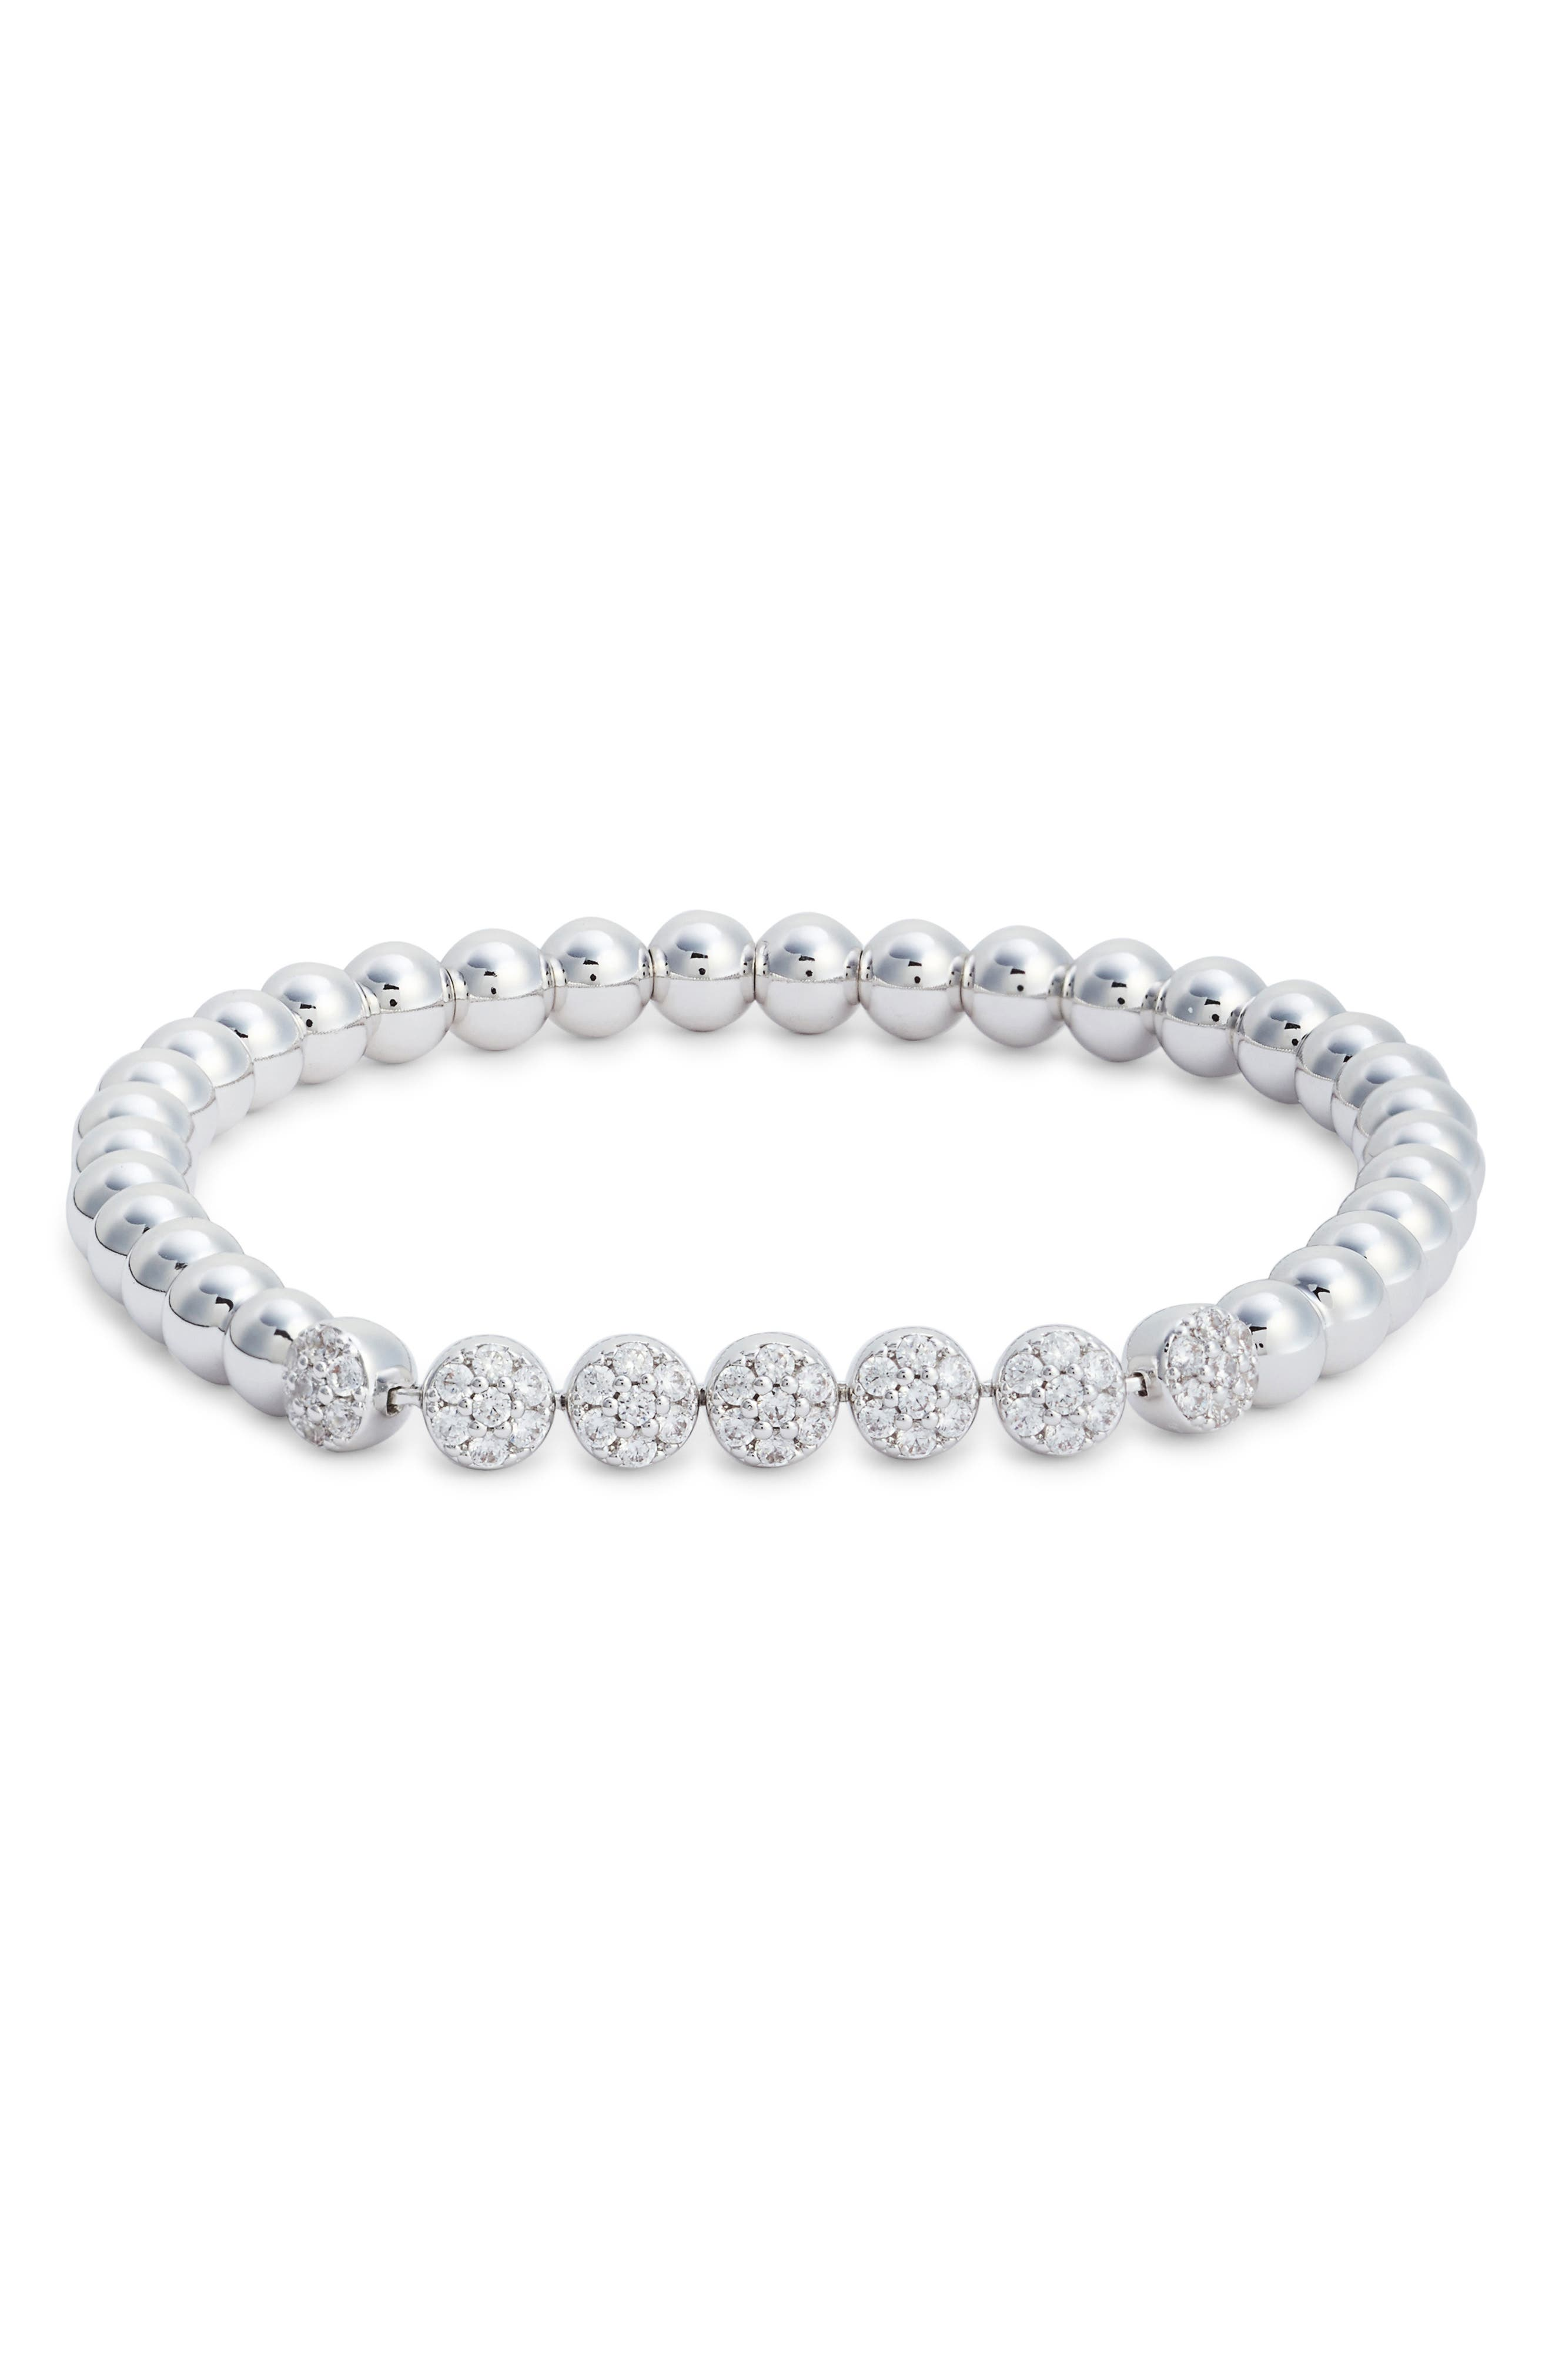 Cubic Zirconia Bracelet,                             Main thumbnail 1, color,